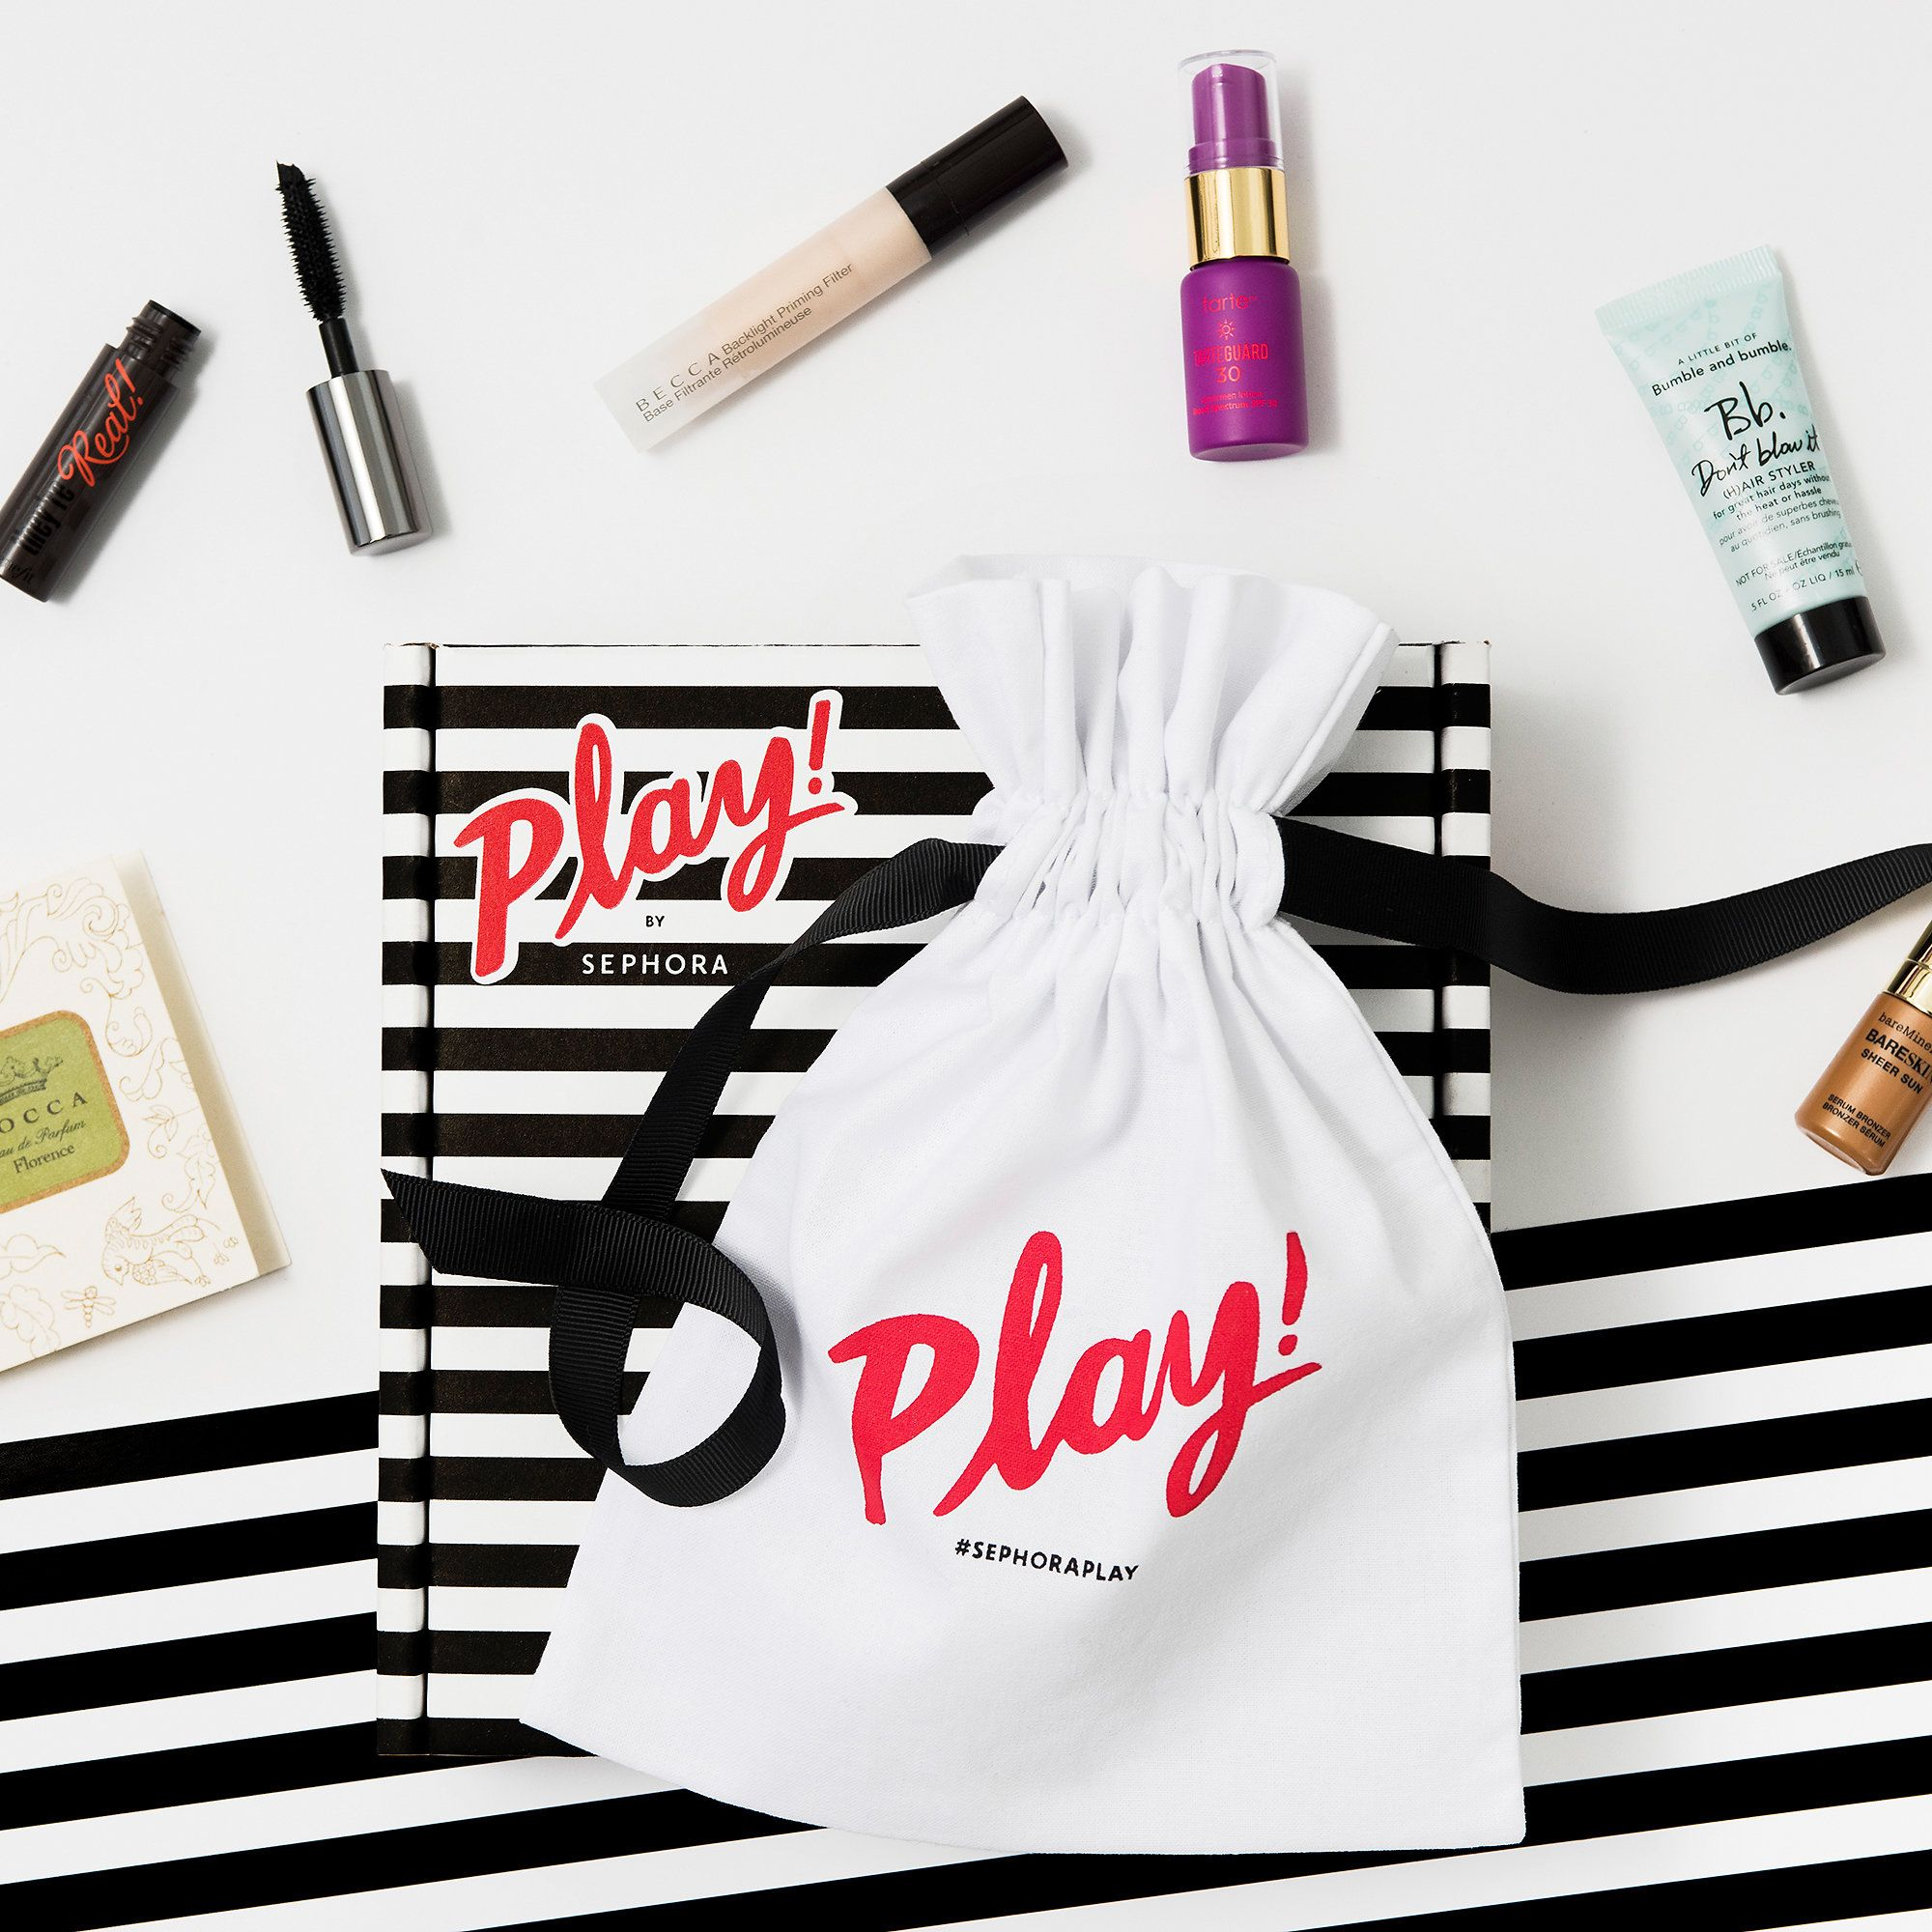 Sign up for Sephora's monthly beauty subscription box that